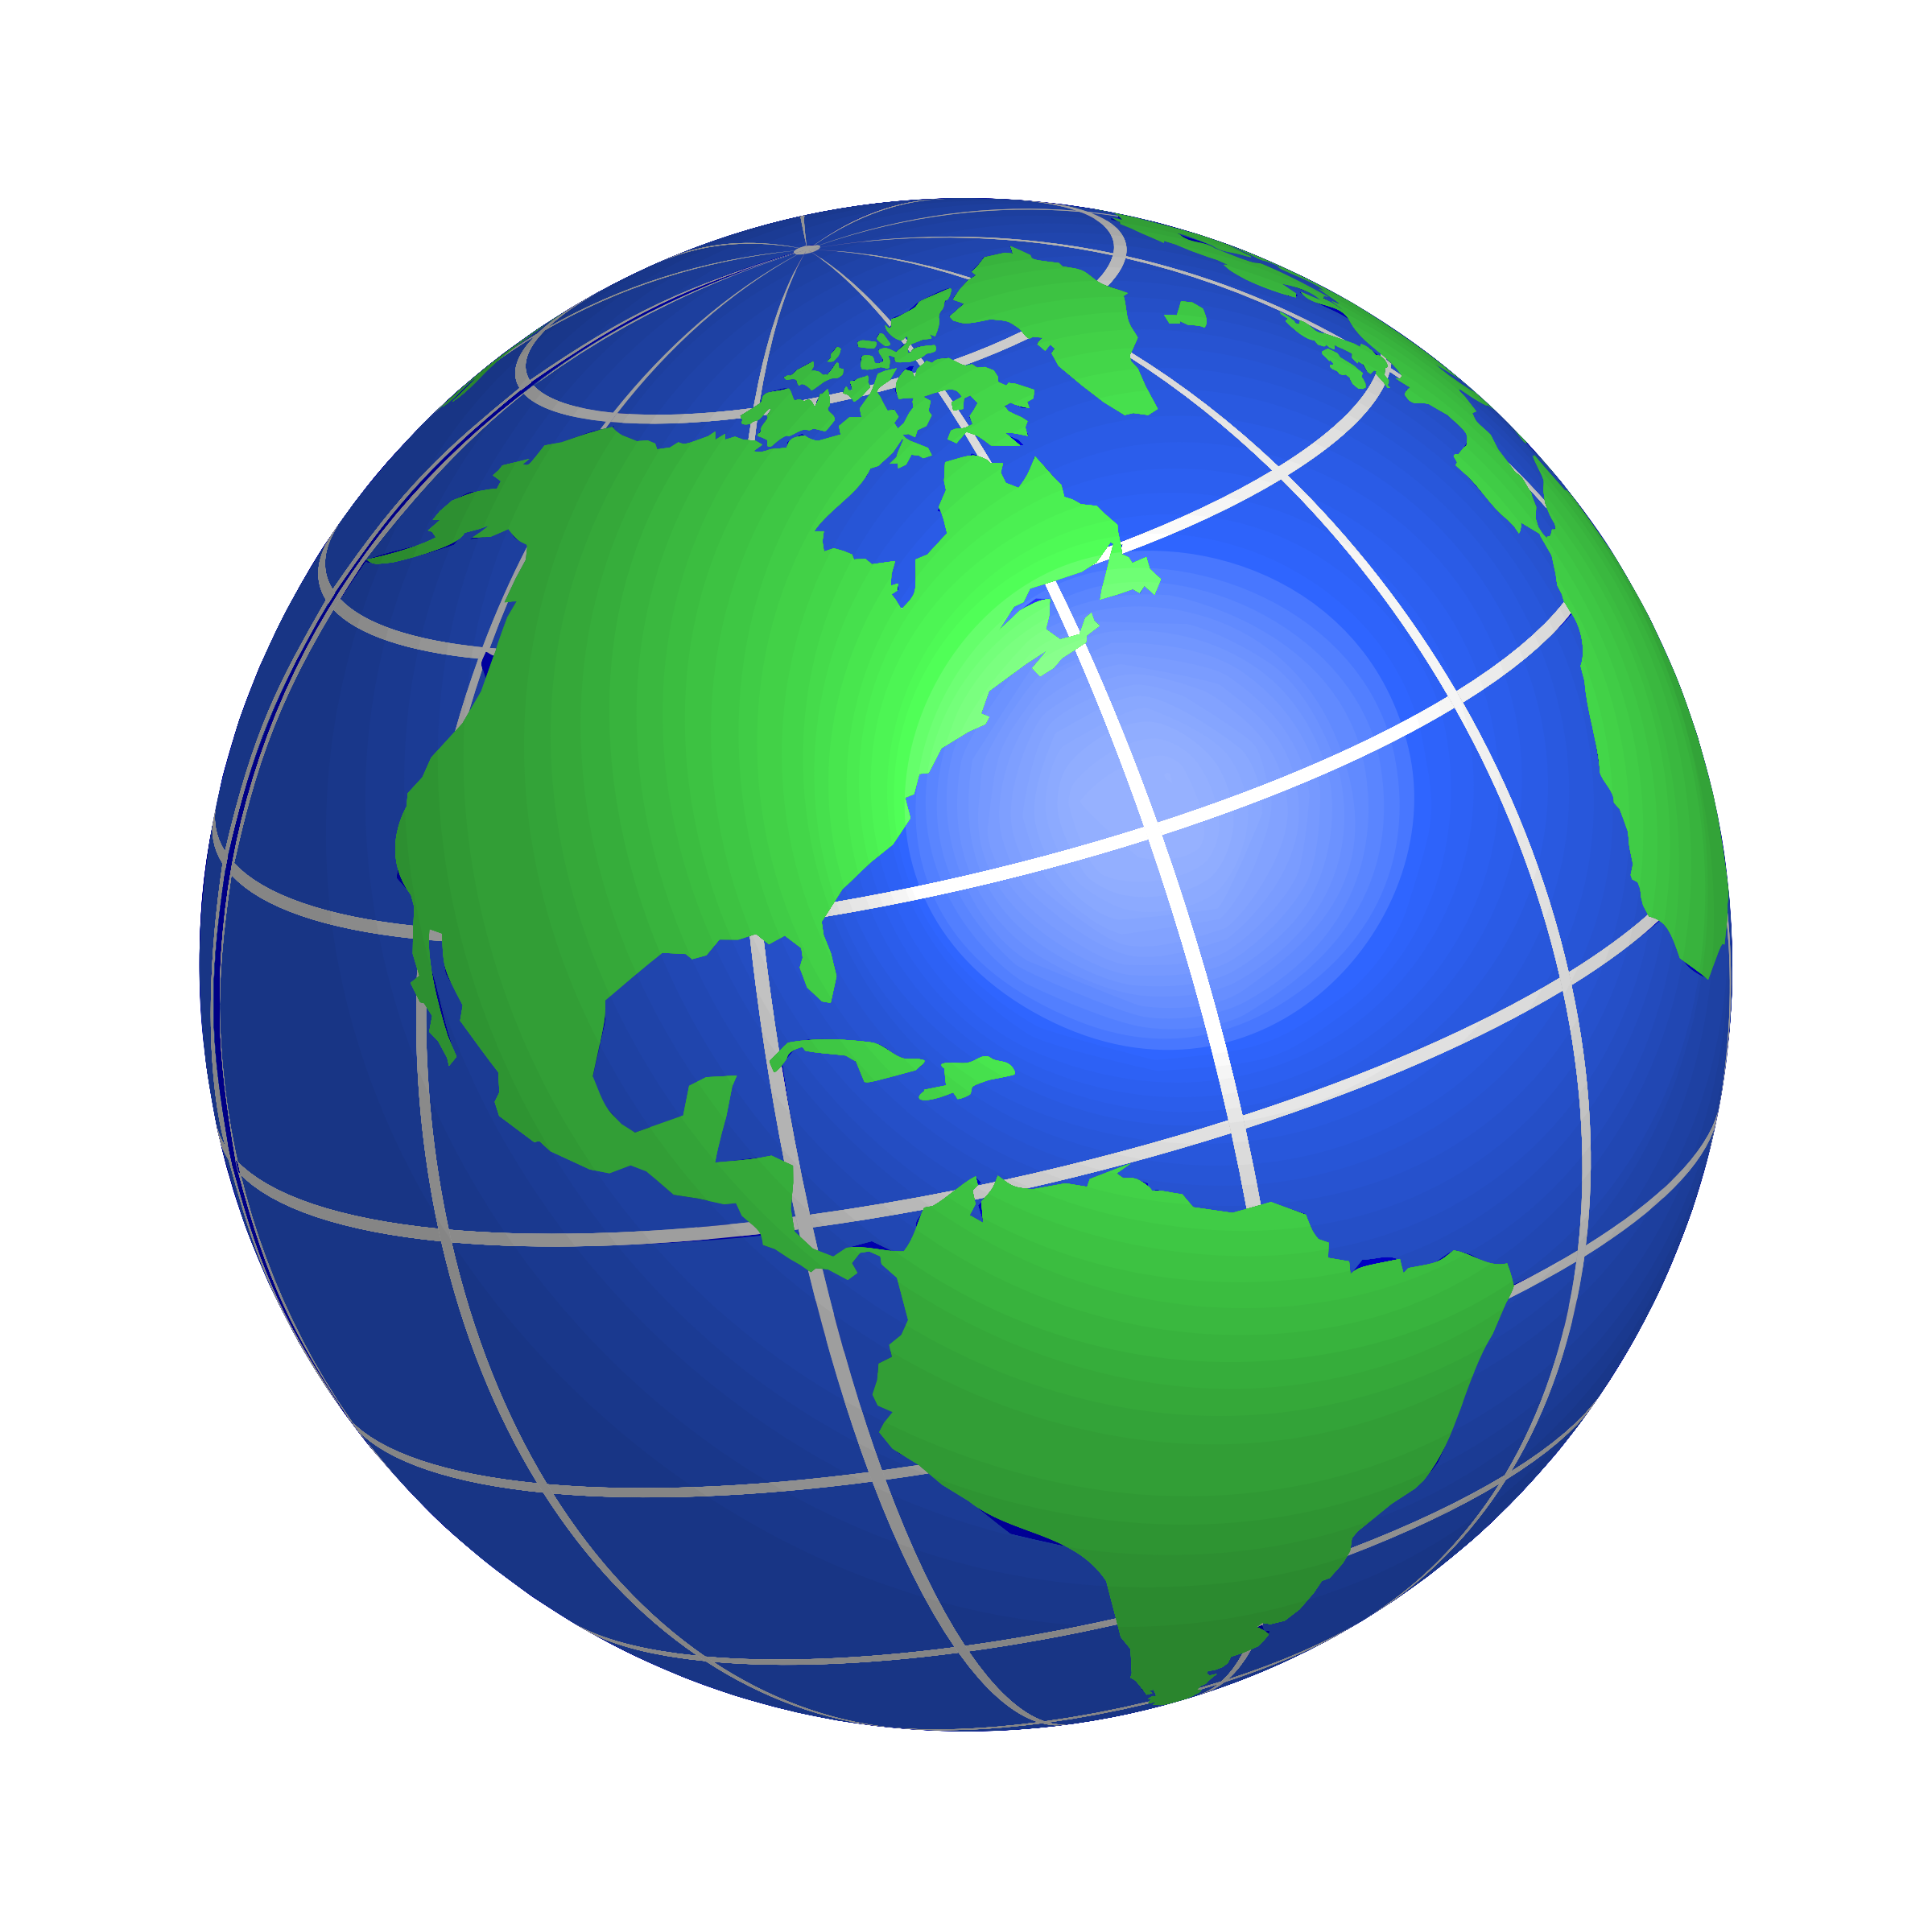 2400x2400 Globe Clipart Free Clipart Images 2